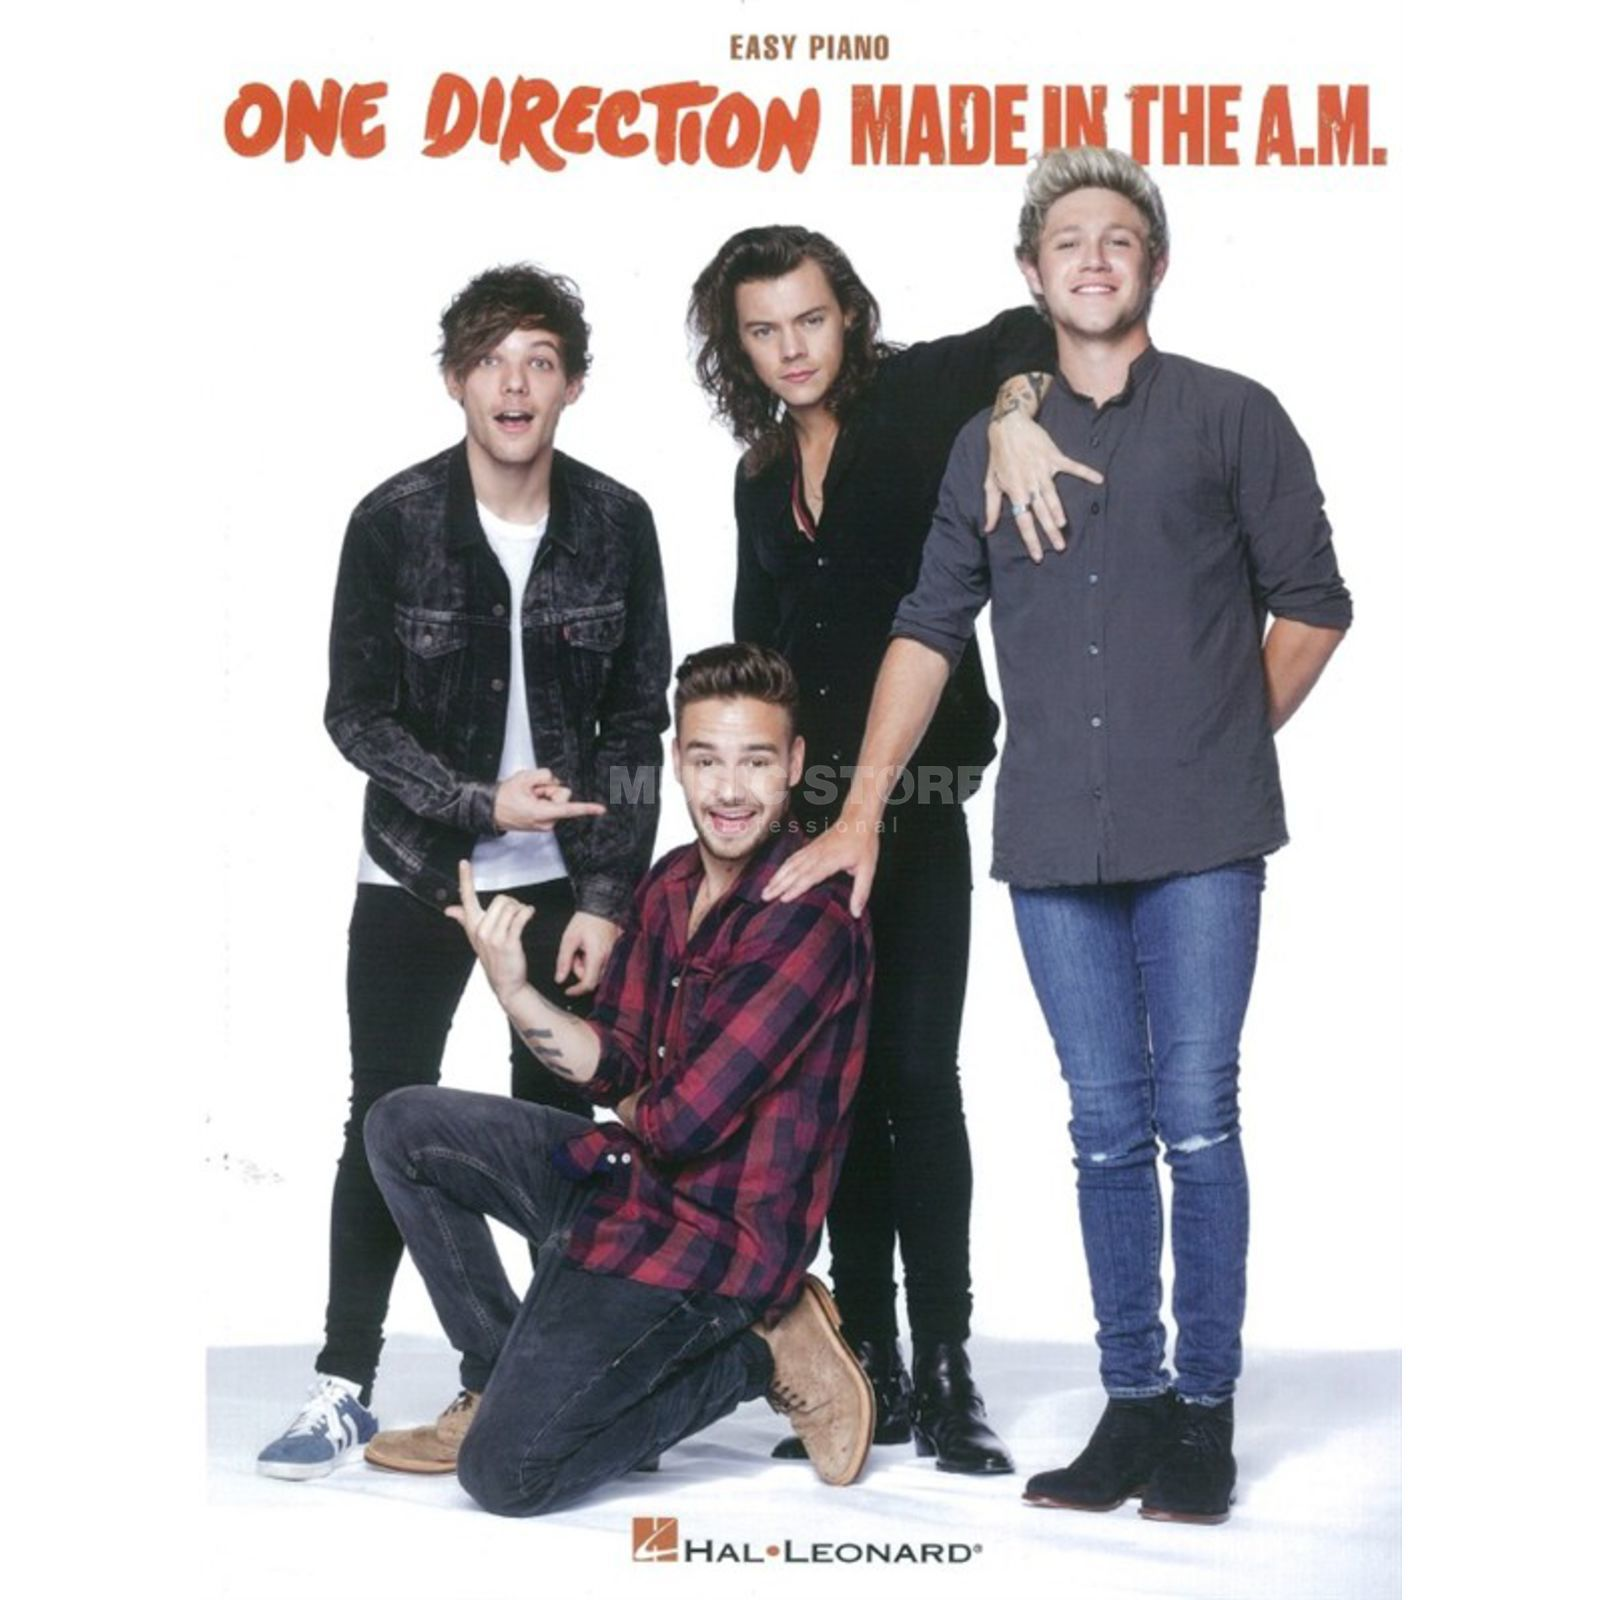 Hal Leonard One Direction: Made In The A.M. Produktbild